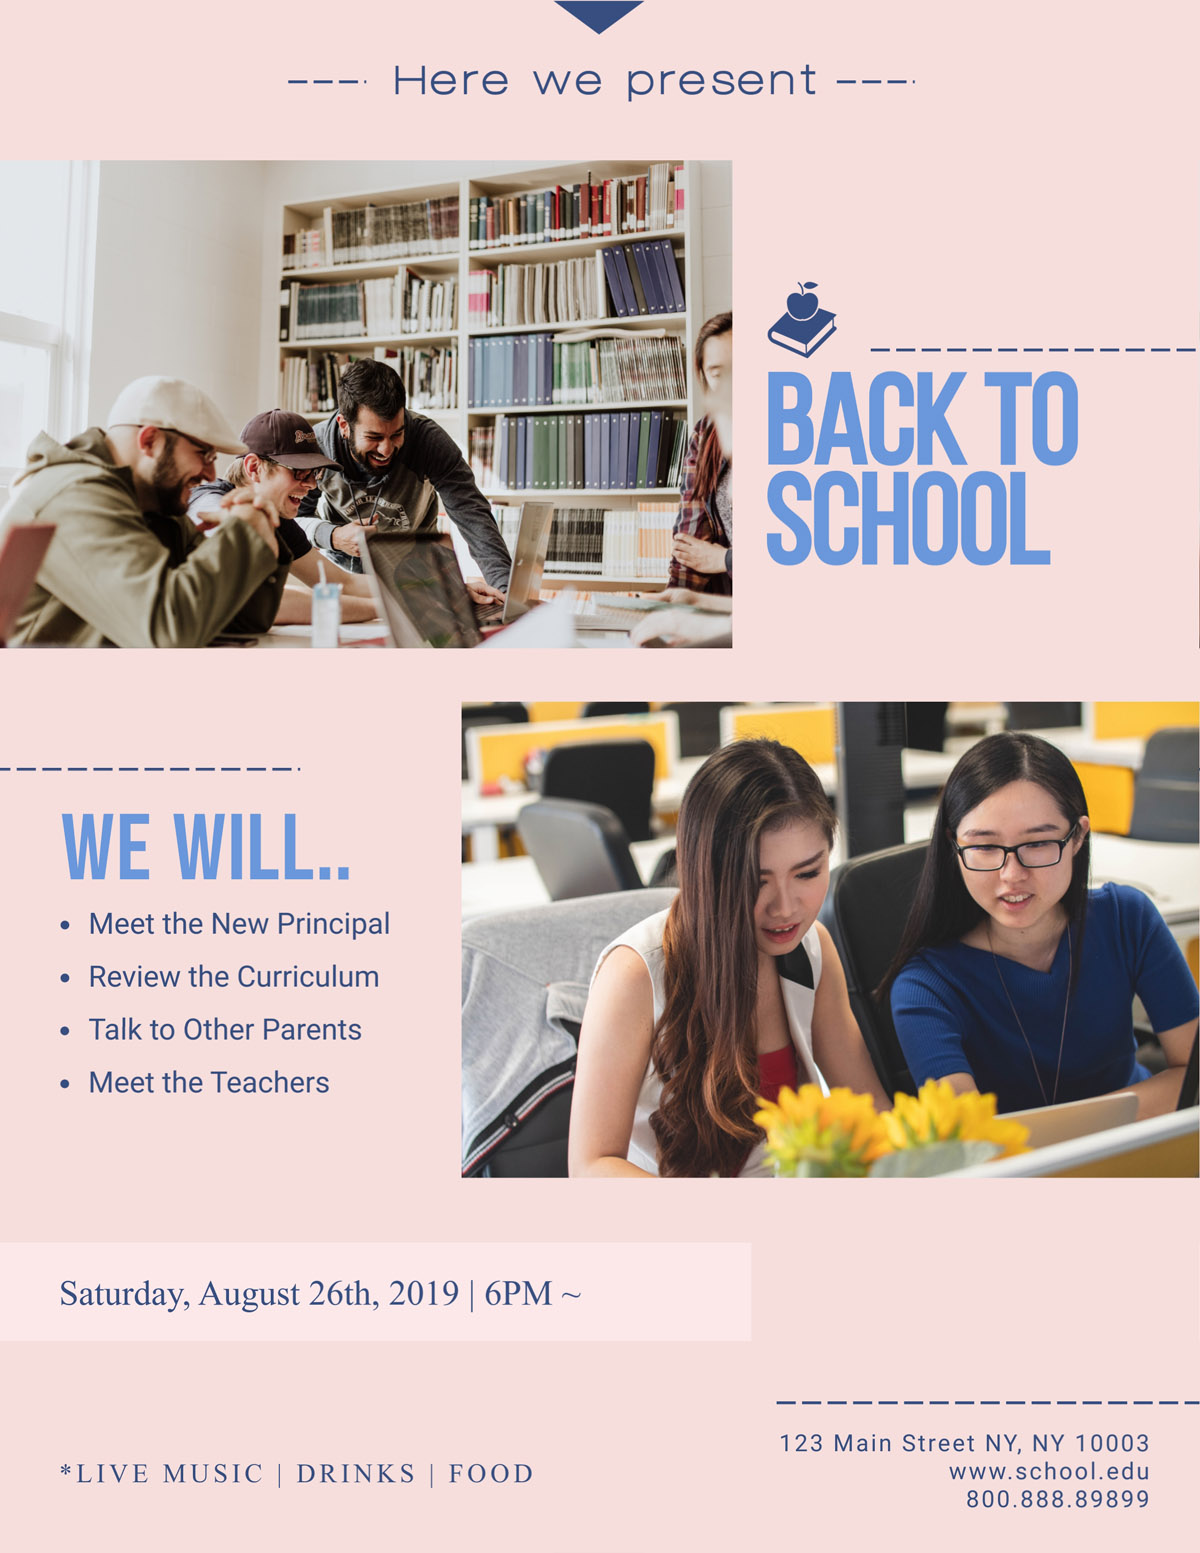 flyer templates - school educational event